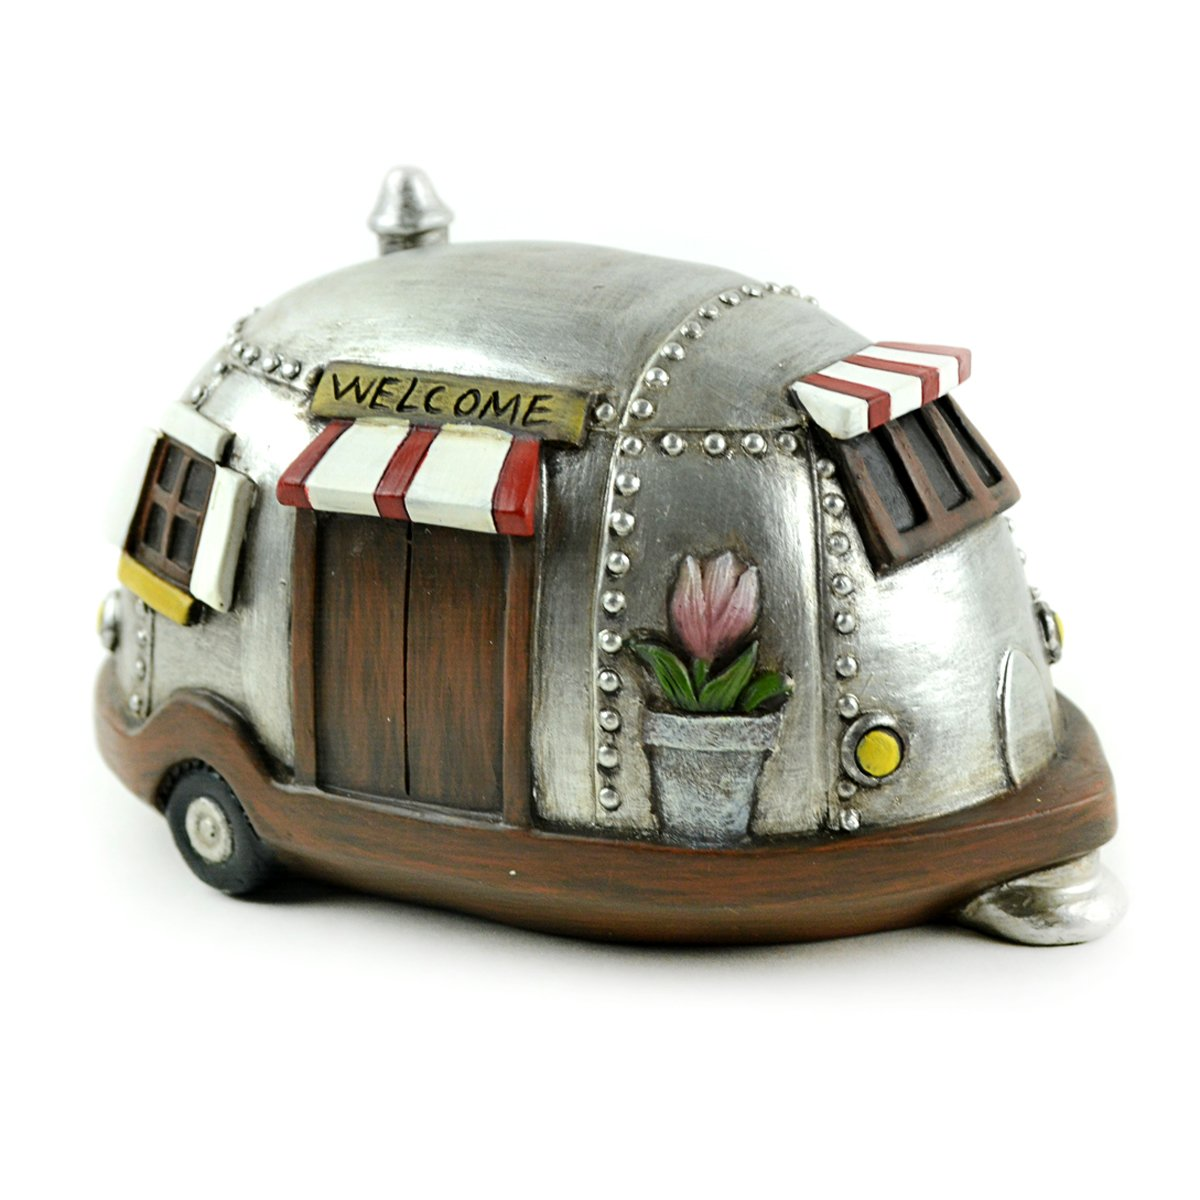 Fairy Garden Sets in Resin with Fine Detailing (Welcome to Las Vegas Sign Camper and Gnomes) by Clever Home (Image #3)